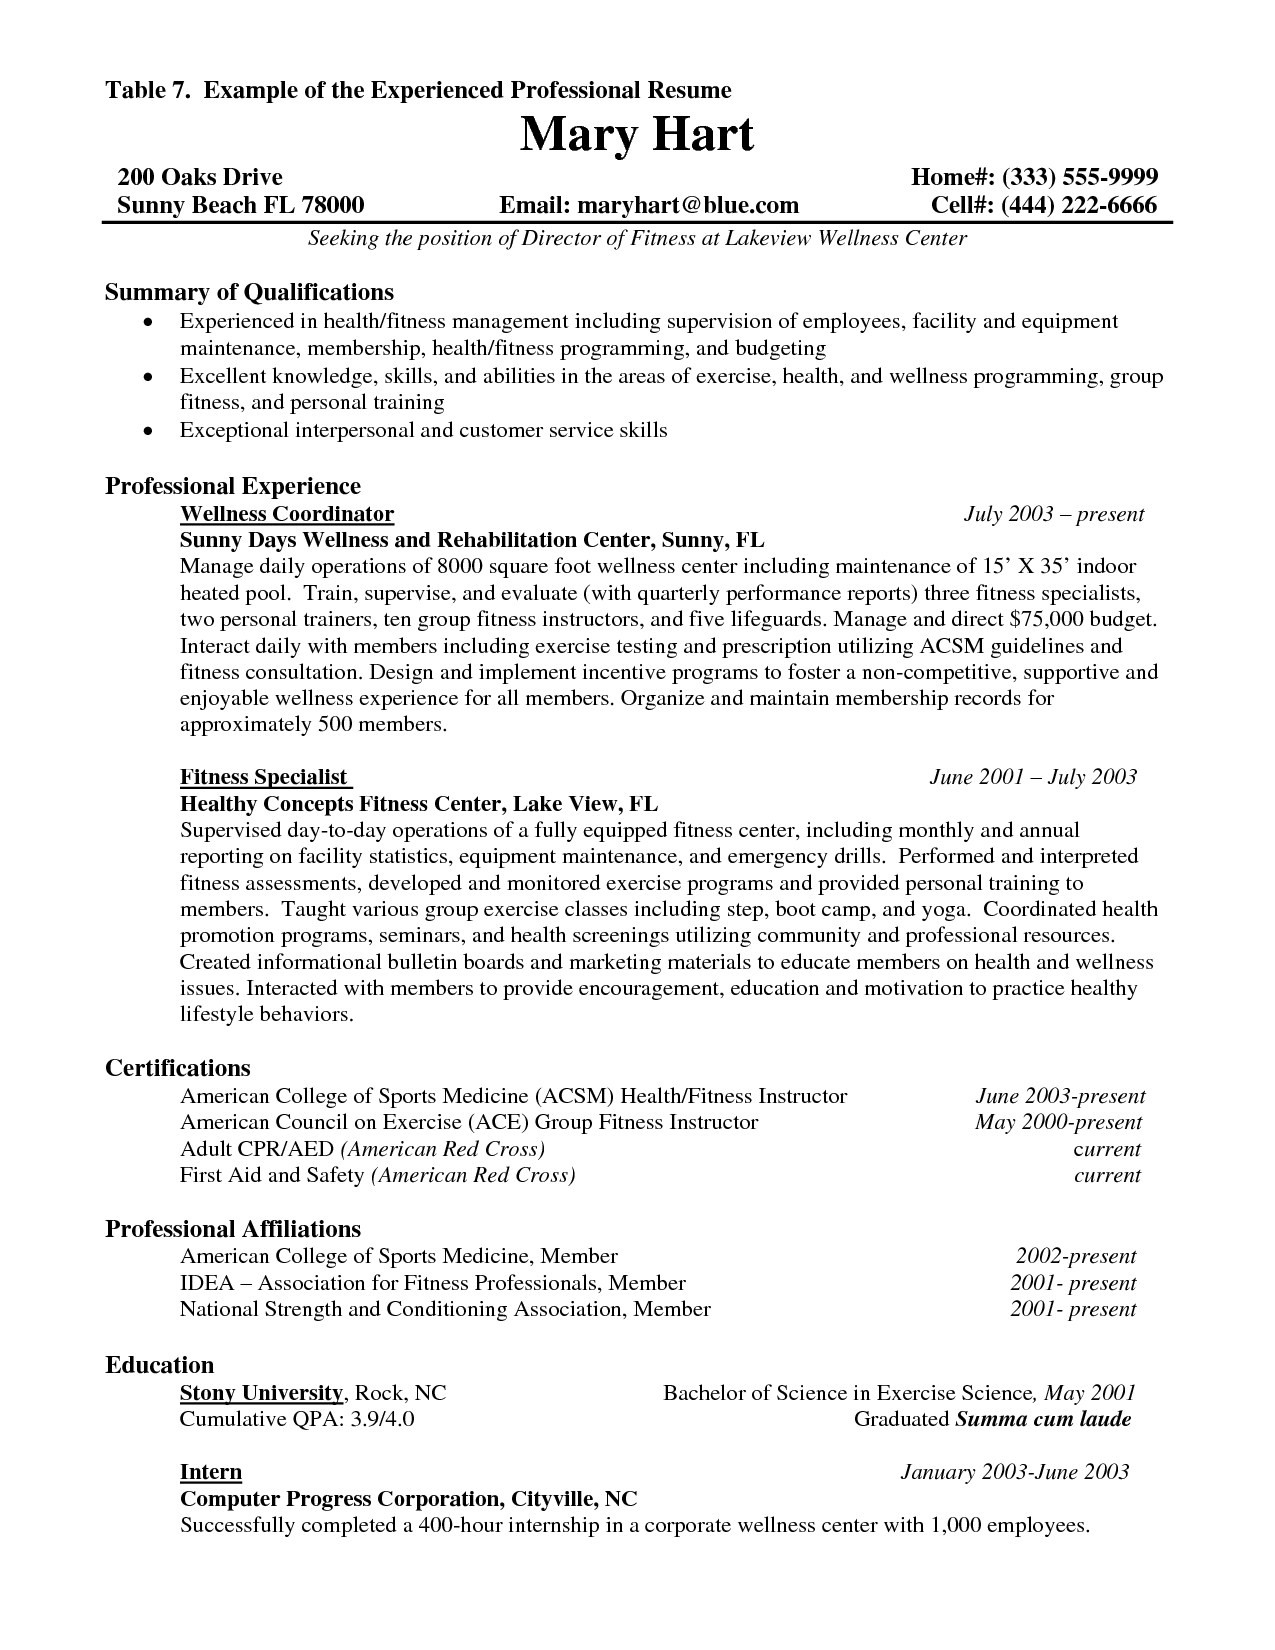 Summary for Resume with No Experience - No Experience Resume Sample Fresh How to Write A Resume with No Job